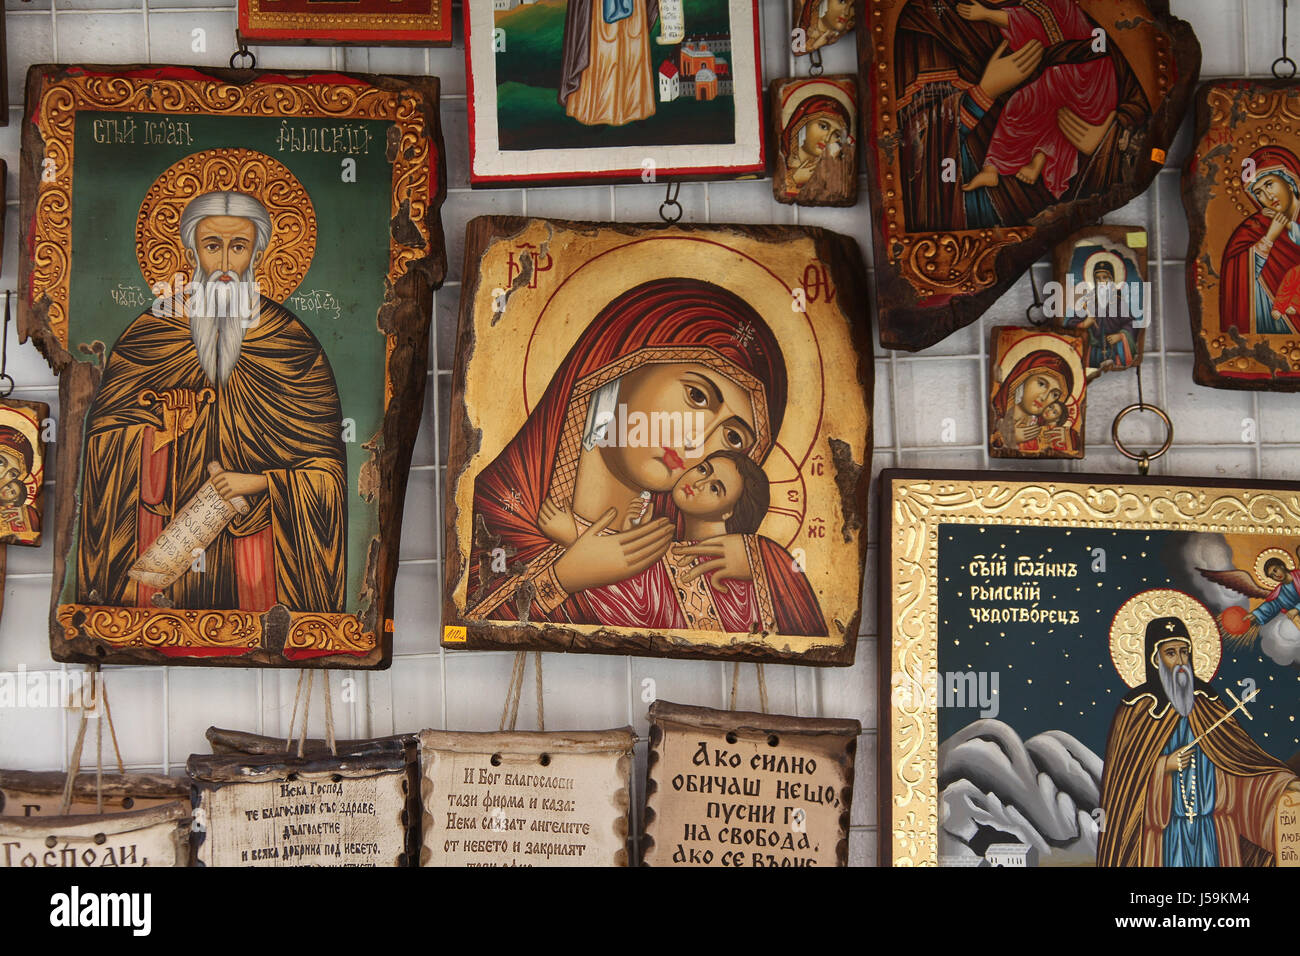 Icons as souvenirs of Rila Monastery in Bulgaria - Stock Image